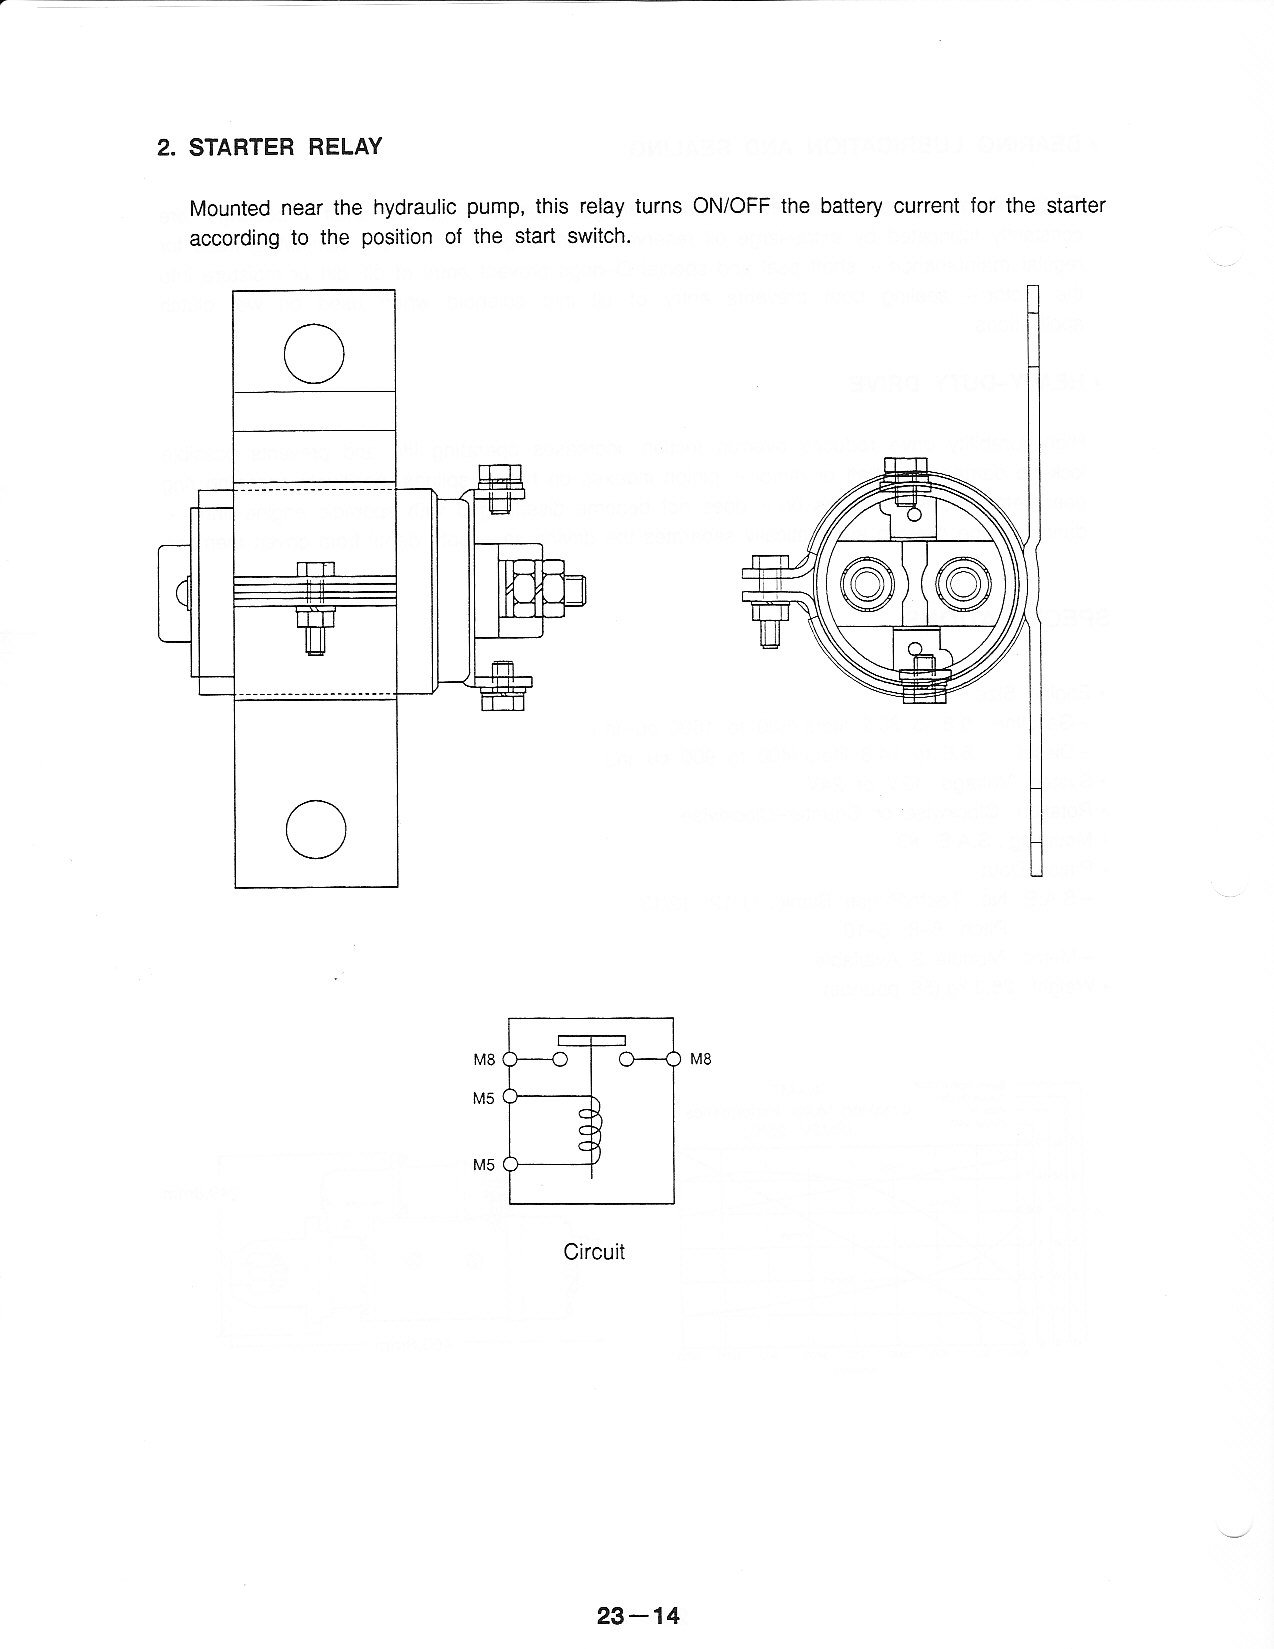 Need A Wiring Schematic For The Starting System On A Samsung 130 Washing Machine Wiring Diagram Samsung Sl 150 Wiring Diagram